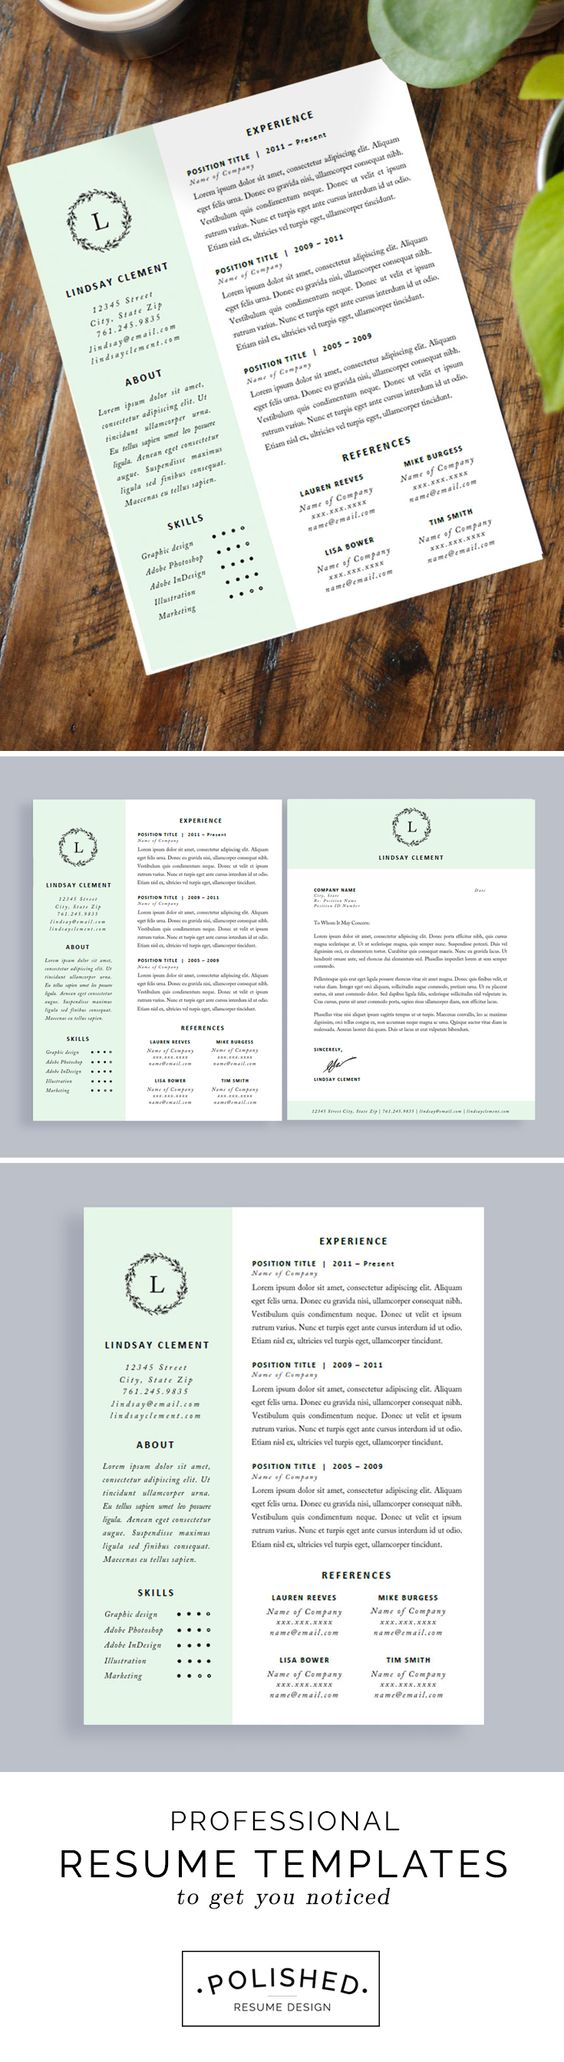 professional resume template and cover letter for word and pages professional resume template cover letter for ms word cv design instant digital job graphics us letter